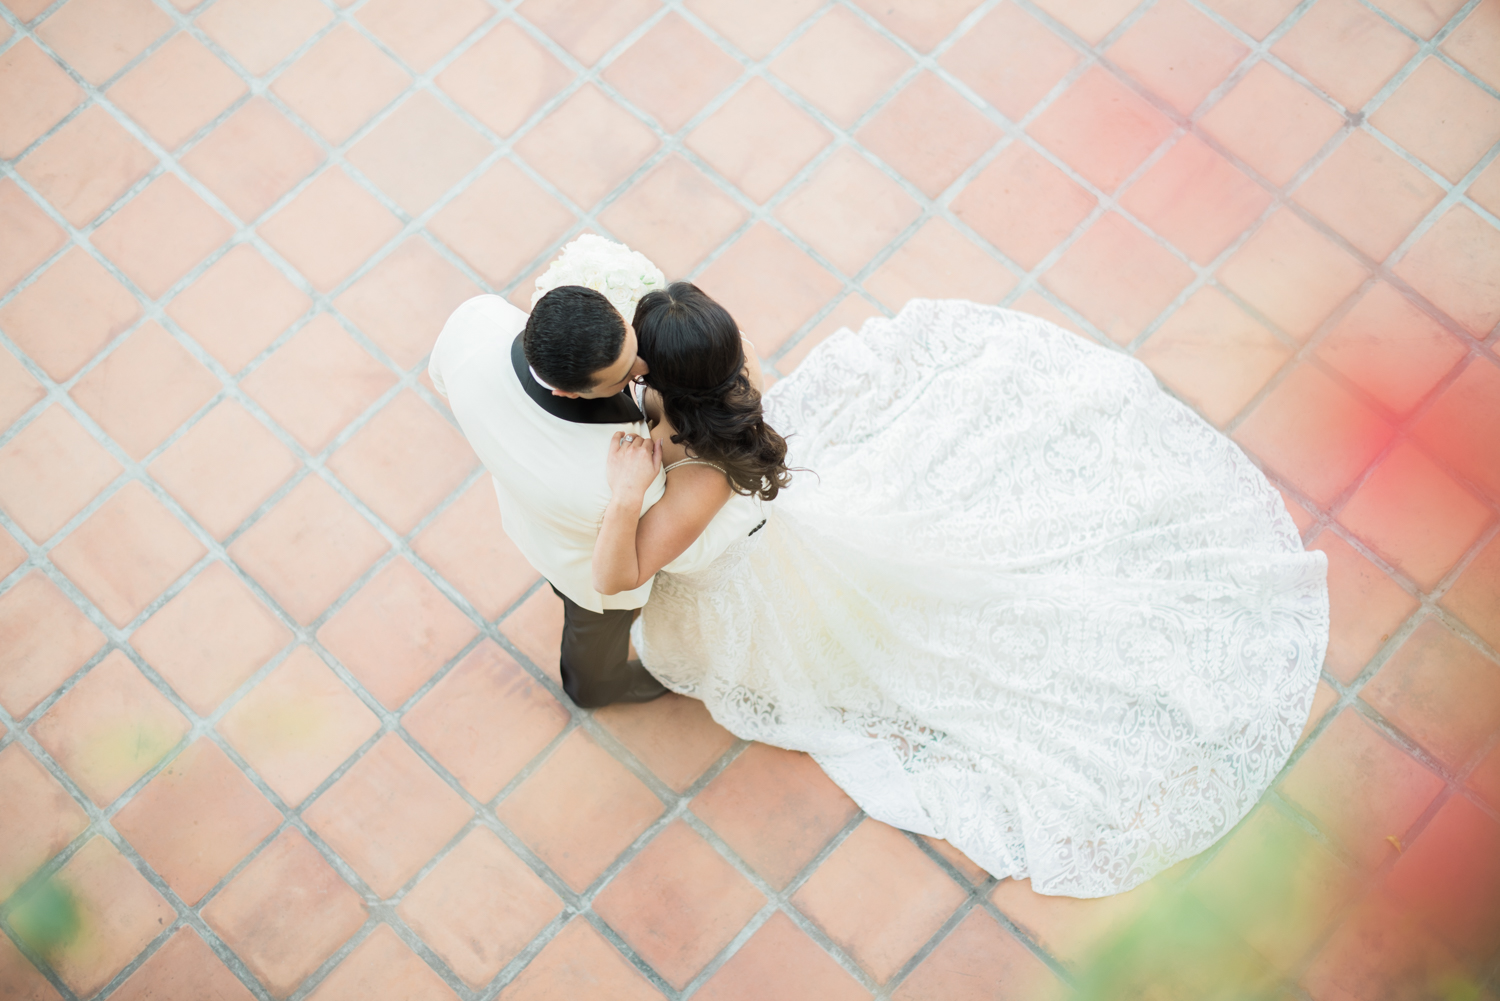 azer&michelle_hummingbird_nest_ranch_wedding_fine_art_photographer_los_angeles-29.jpg